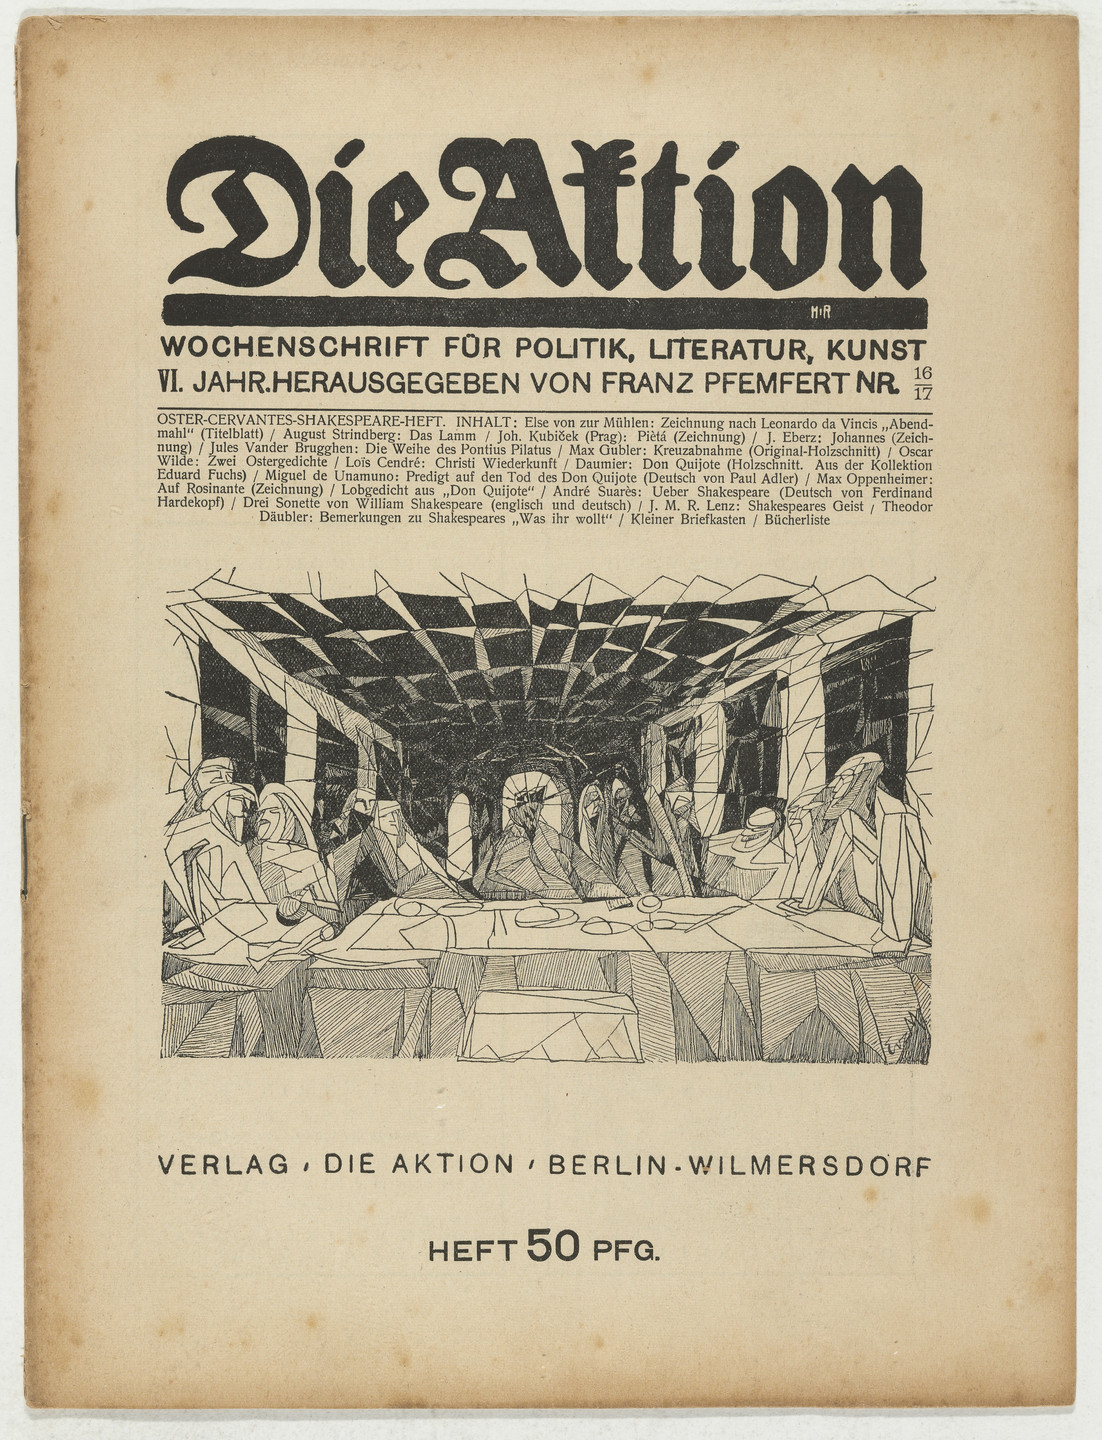 Max Gubler. Die Aktion, vol. 6, no. 16/17. April 23, 1916